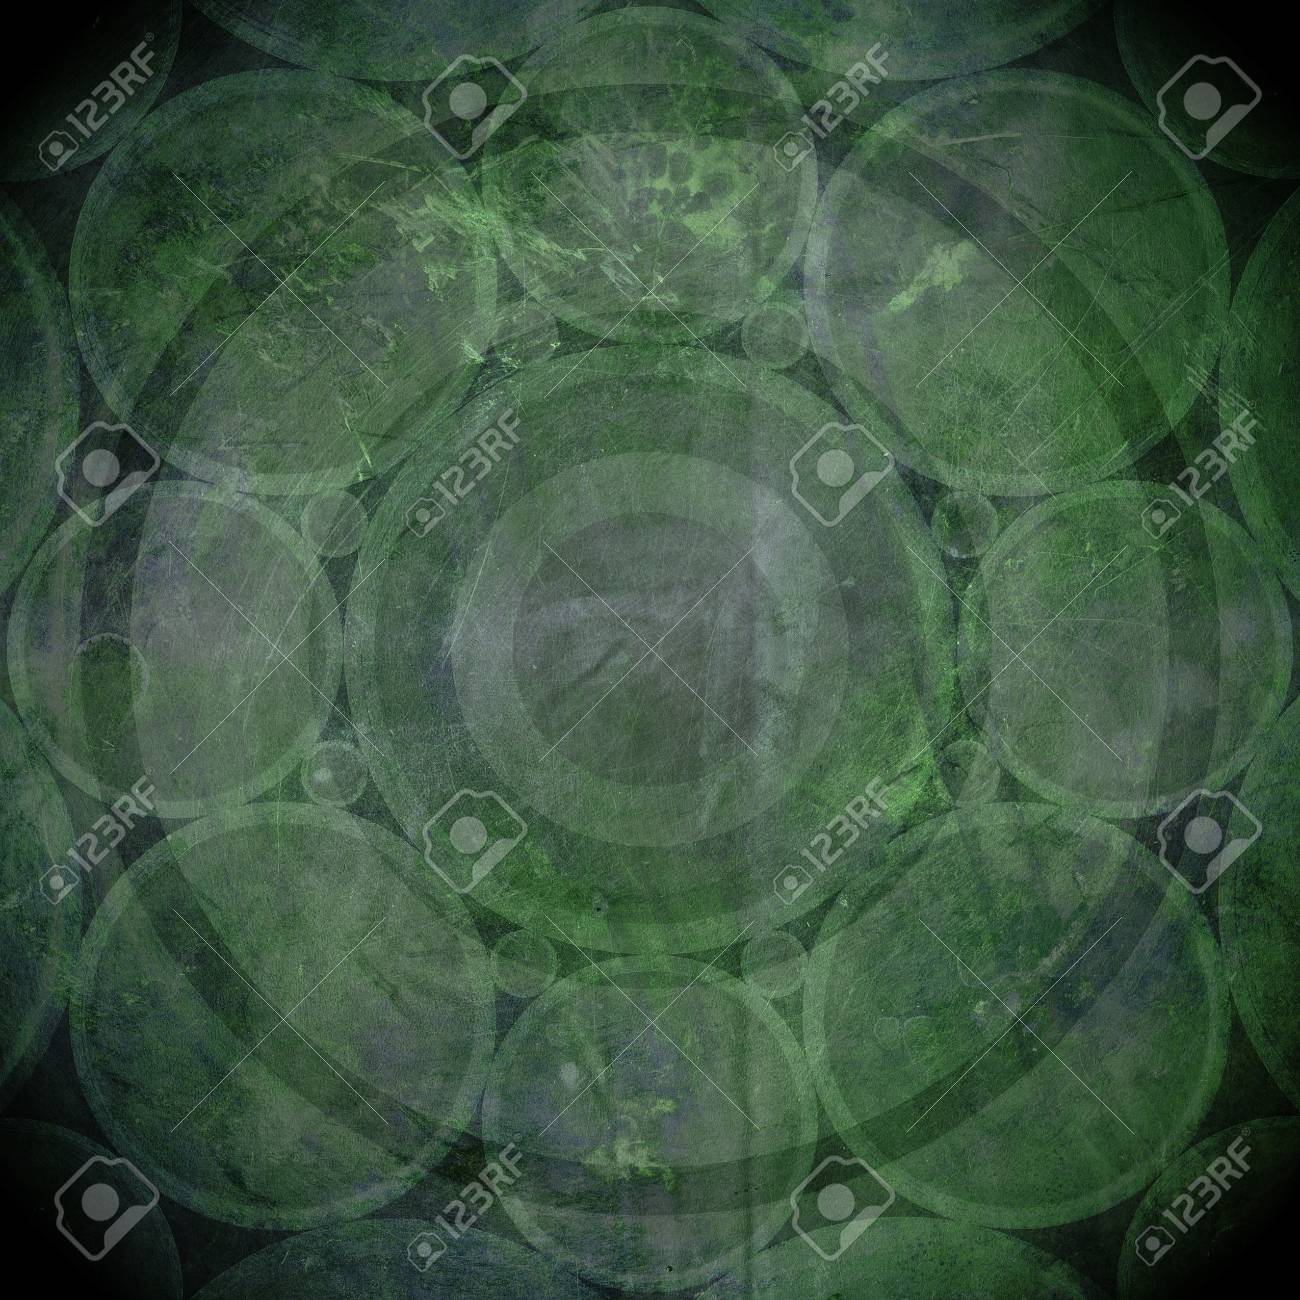 Green and black grunge background with circles Stock Photo - 15326363